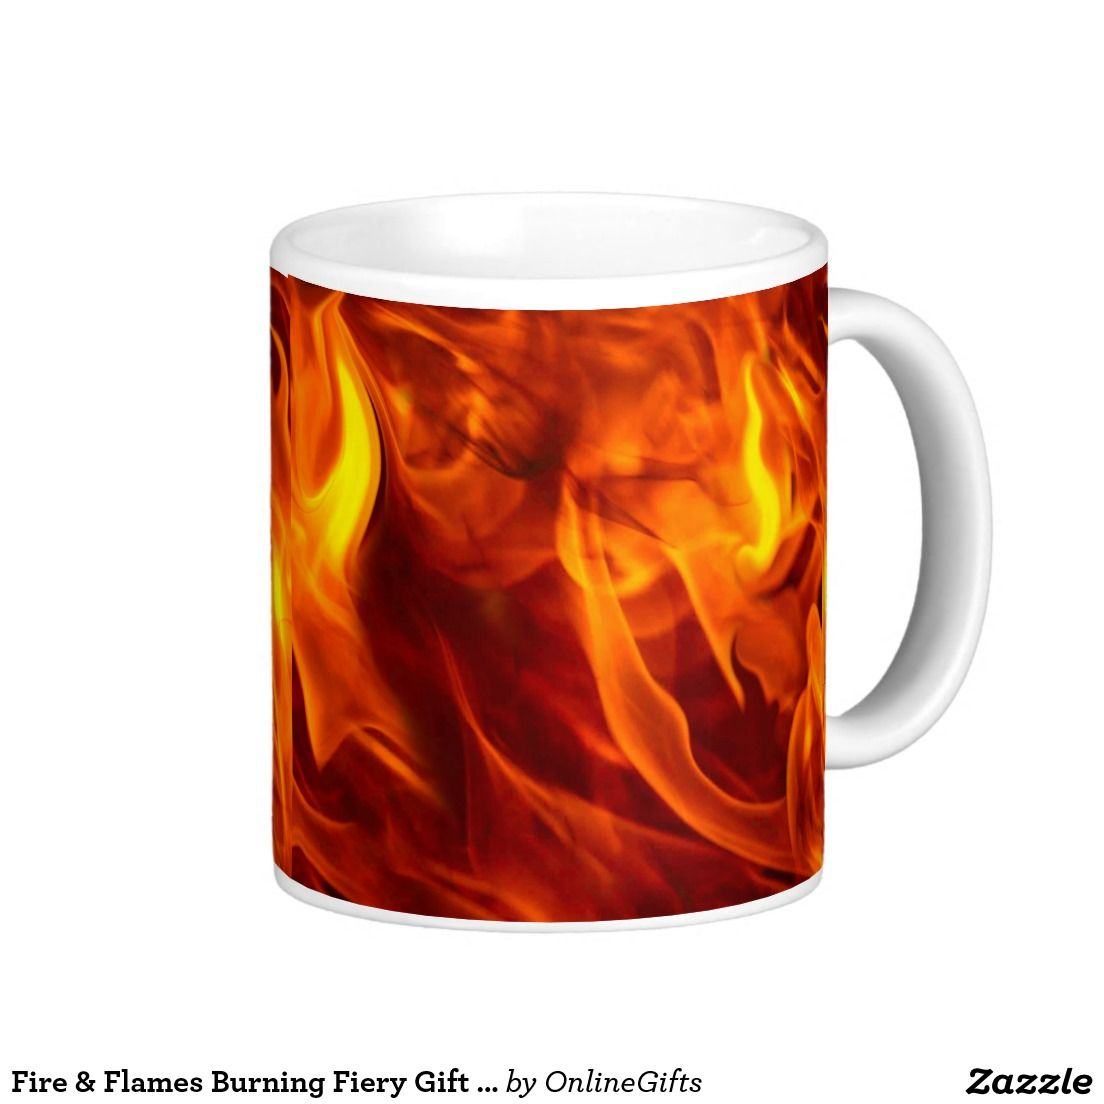 Fire & Flames Burning Fiery Gift Item Classic White Coffee Mug